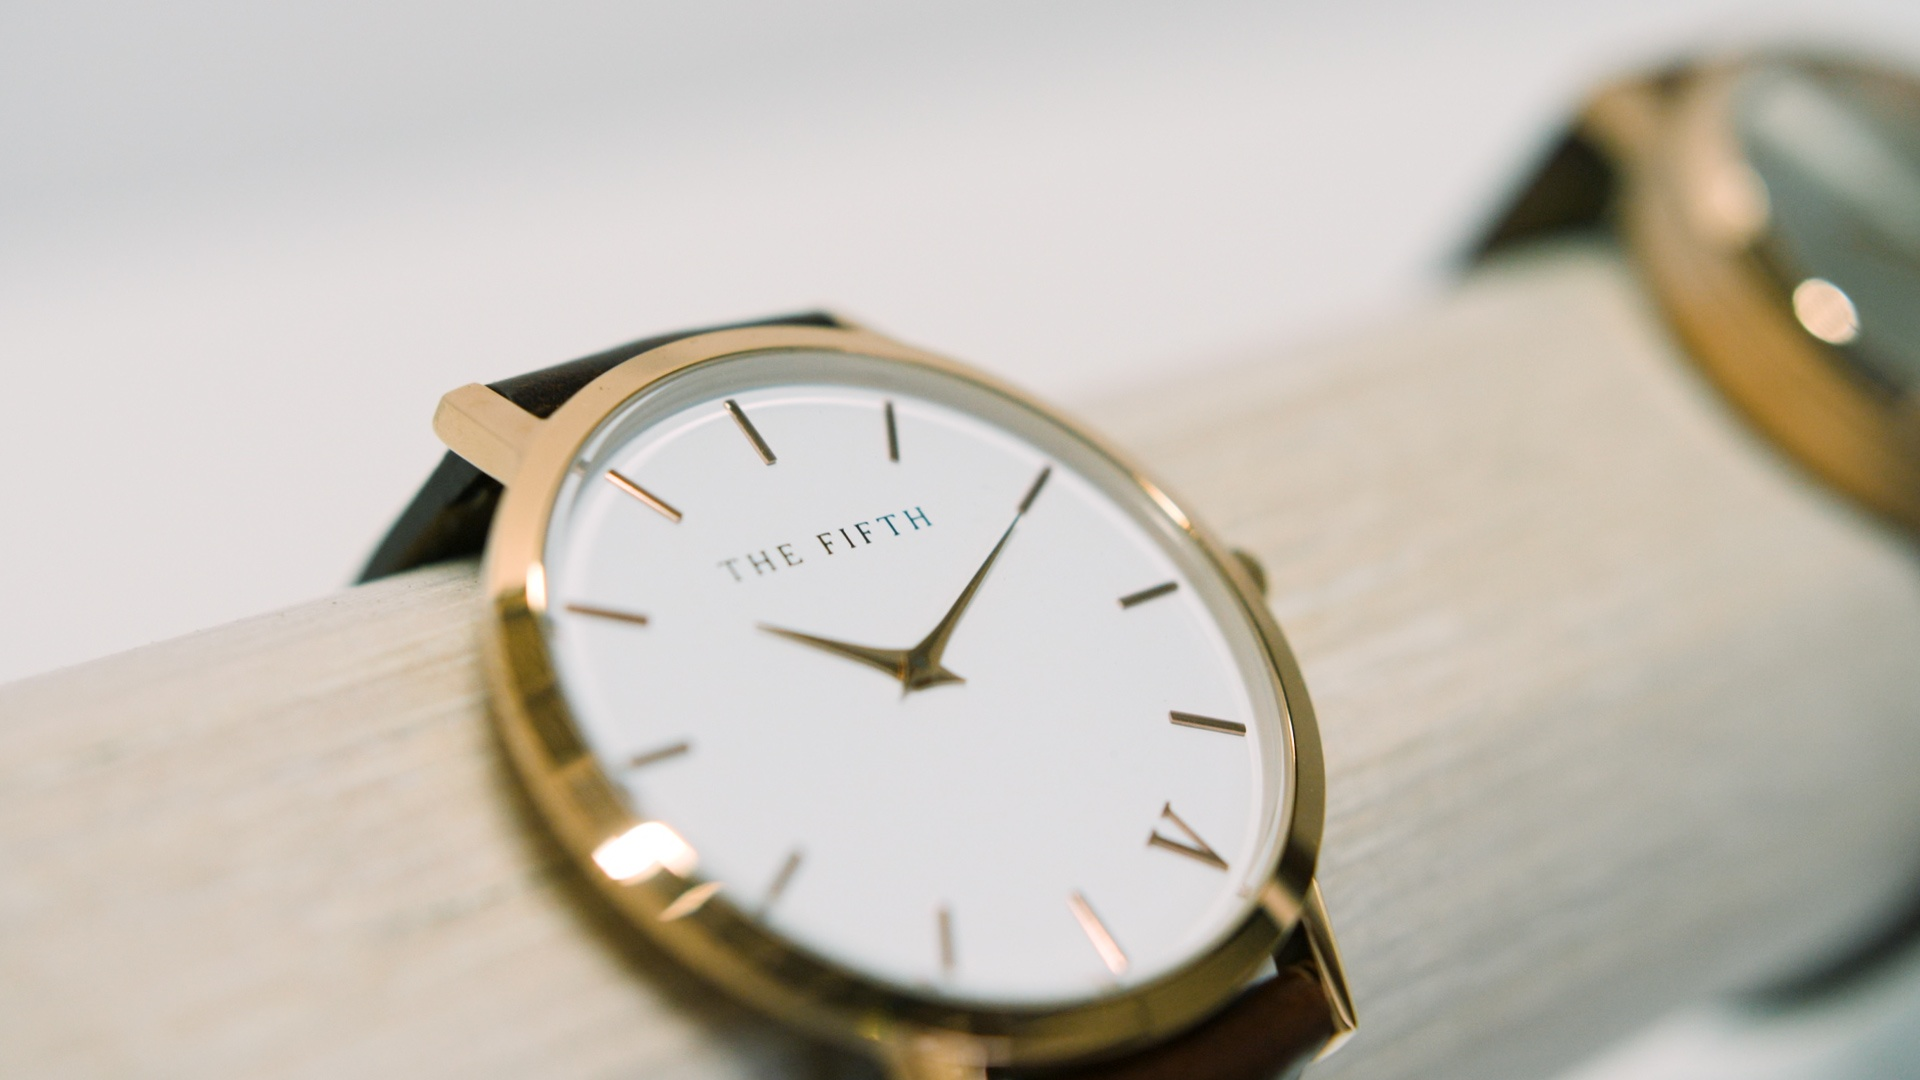 Case Study_The5th_Watch